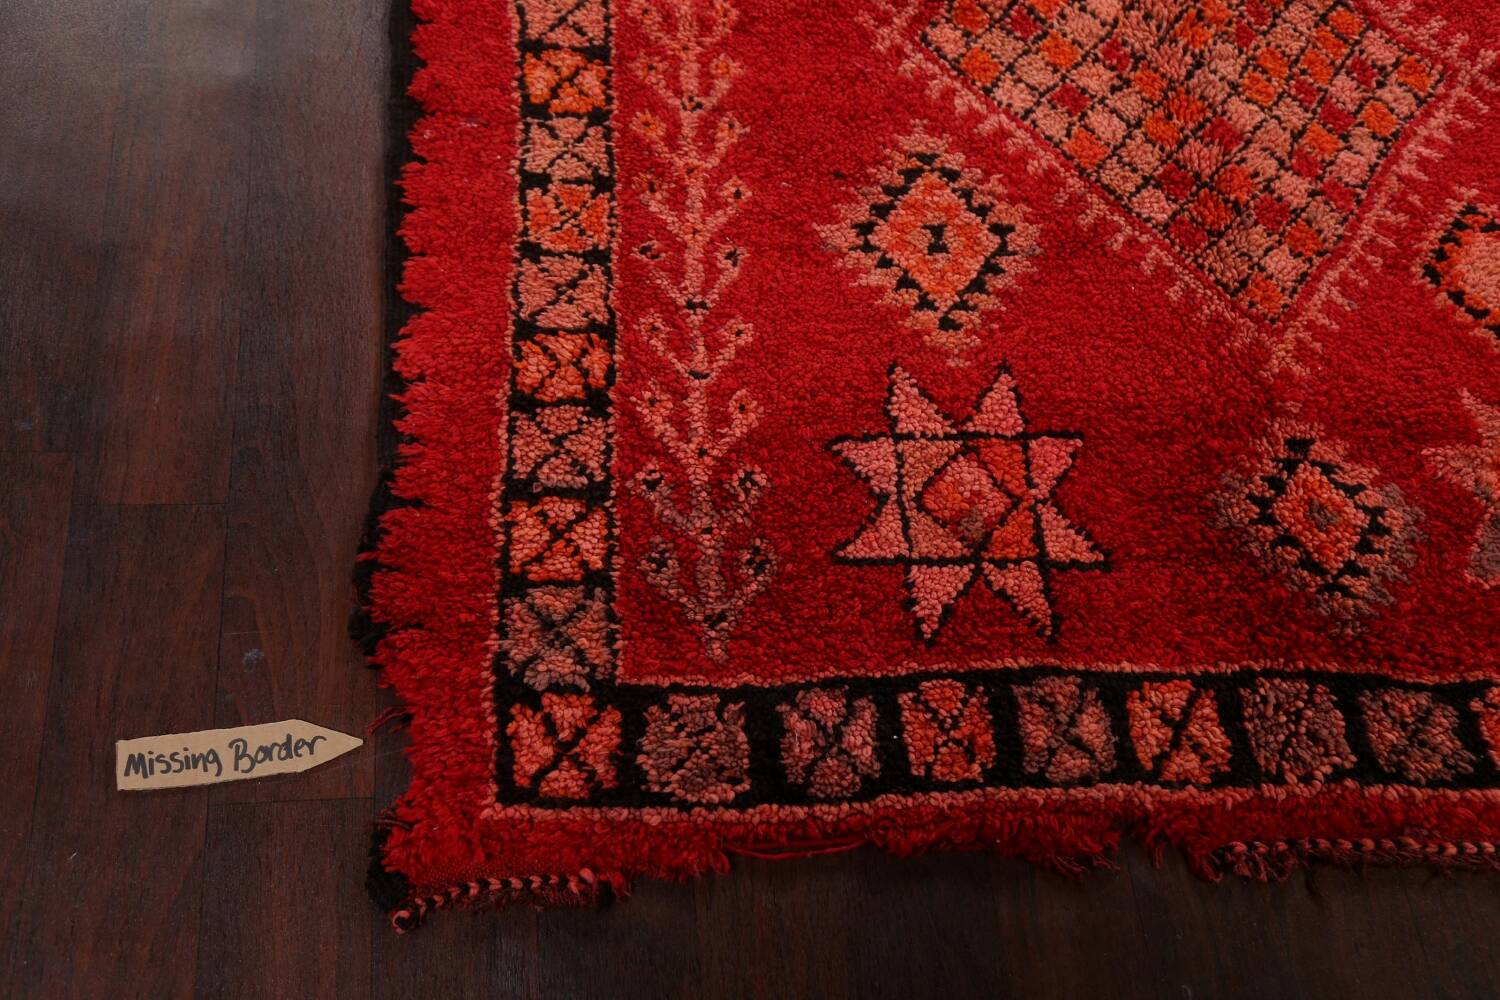 Red Moroccan Berber Area Rug 6x11 image 12